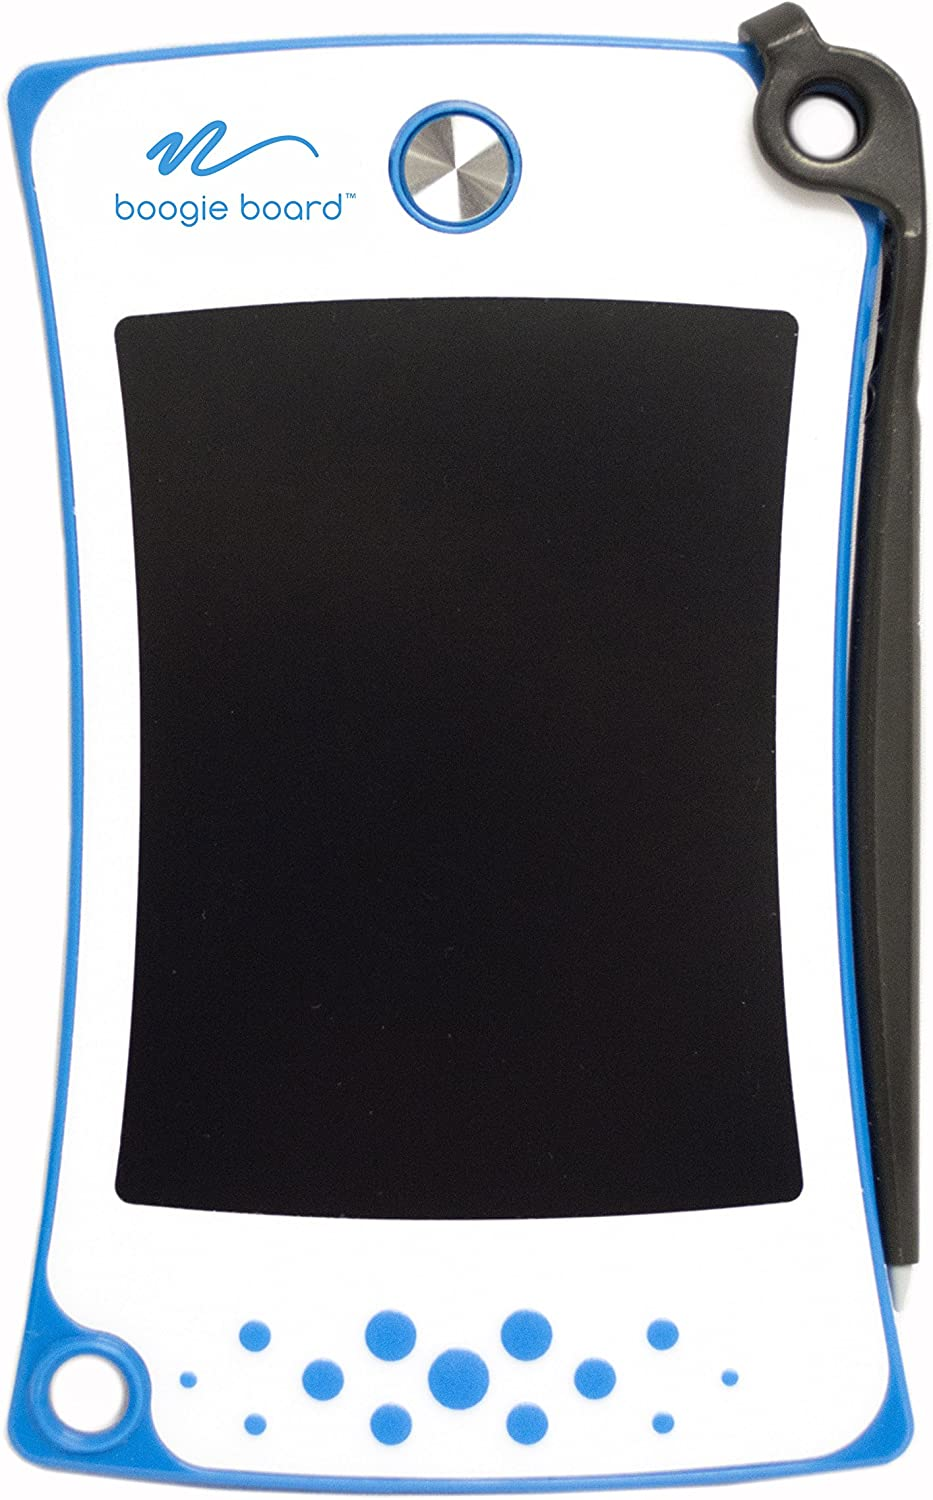 Boogie Board Blue Jot 4.5 LCD Writing Tablet - Authentic Boogie Board that Includes eWriter and Stylus Pen